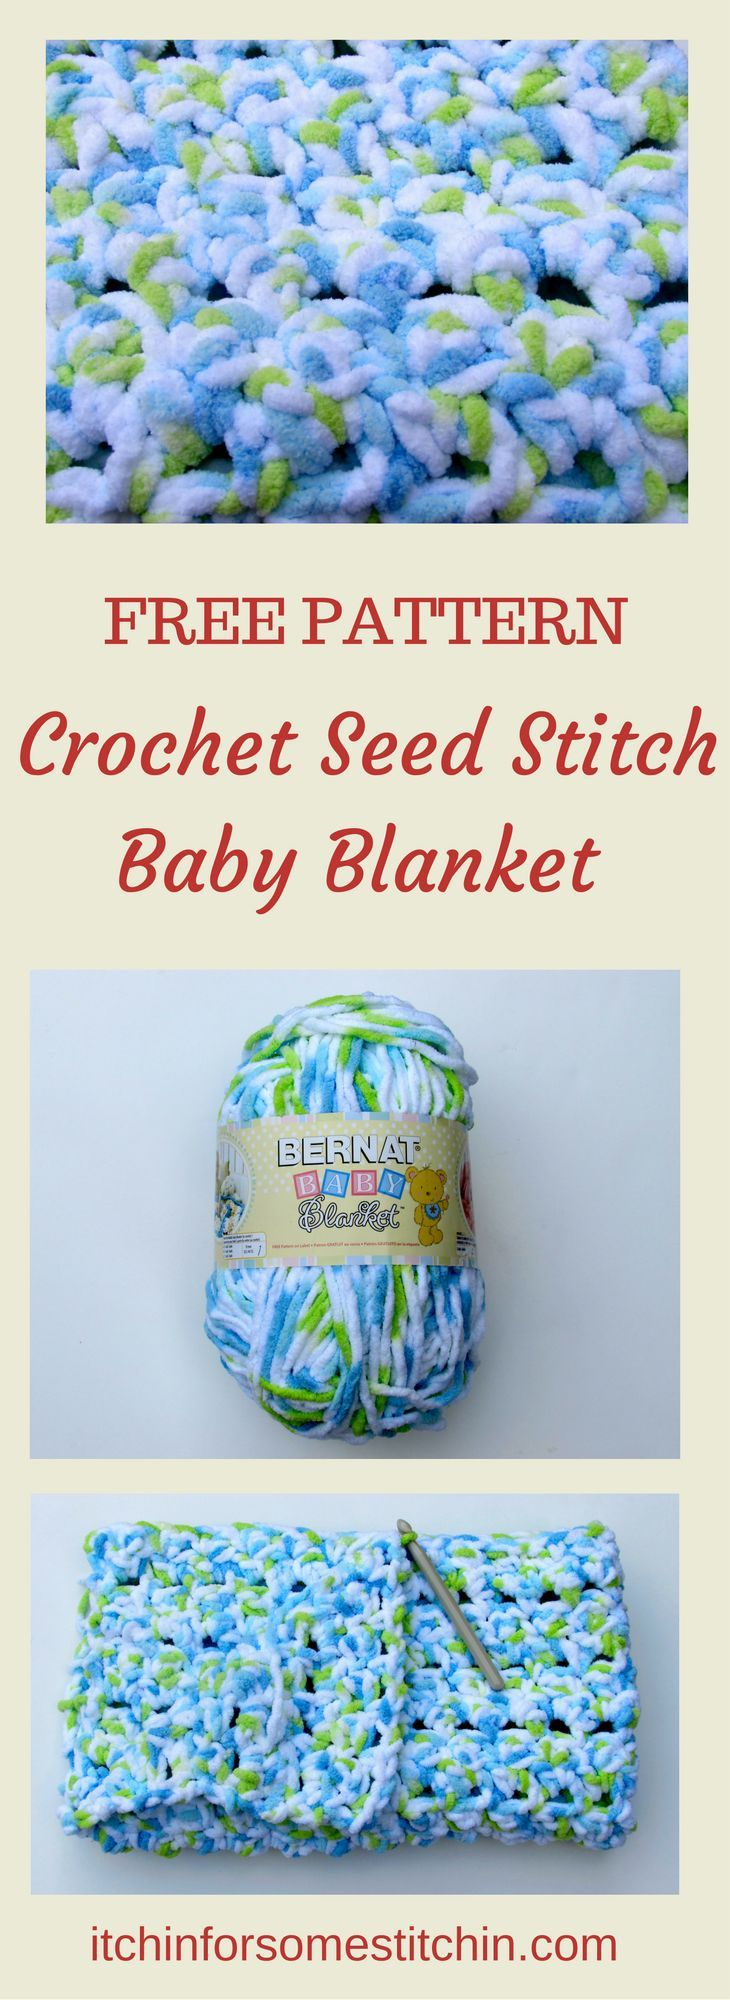 Crochet Seed Stitch Baby Blanket Pattern - Itchin' for some Stitchin'